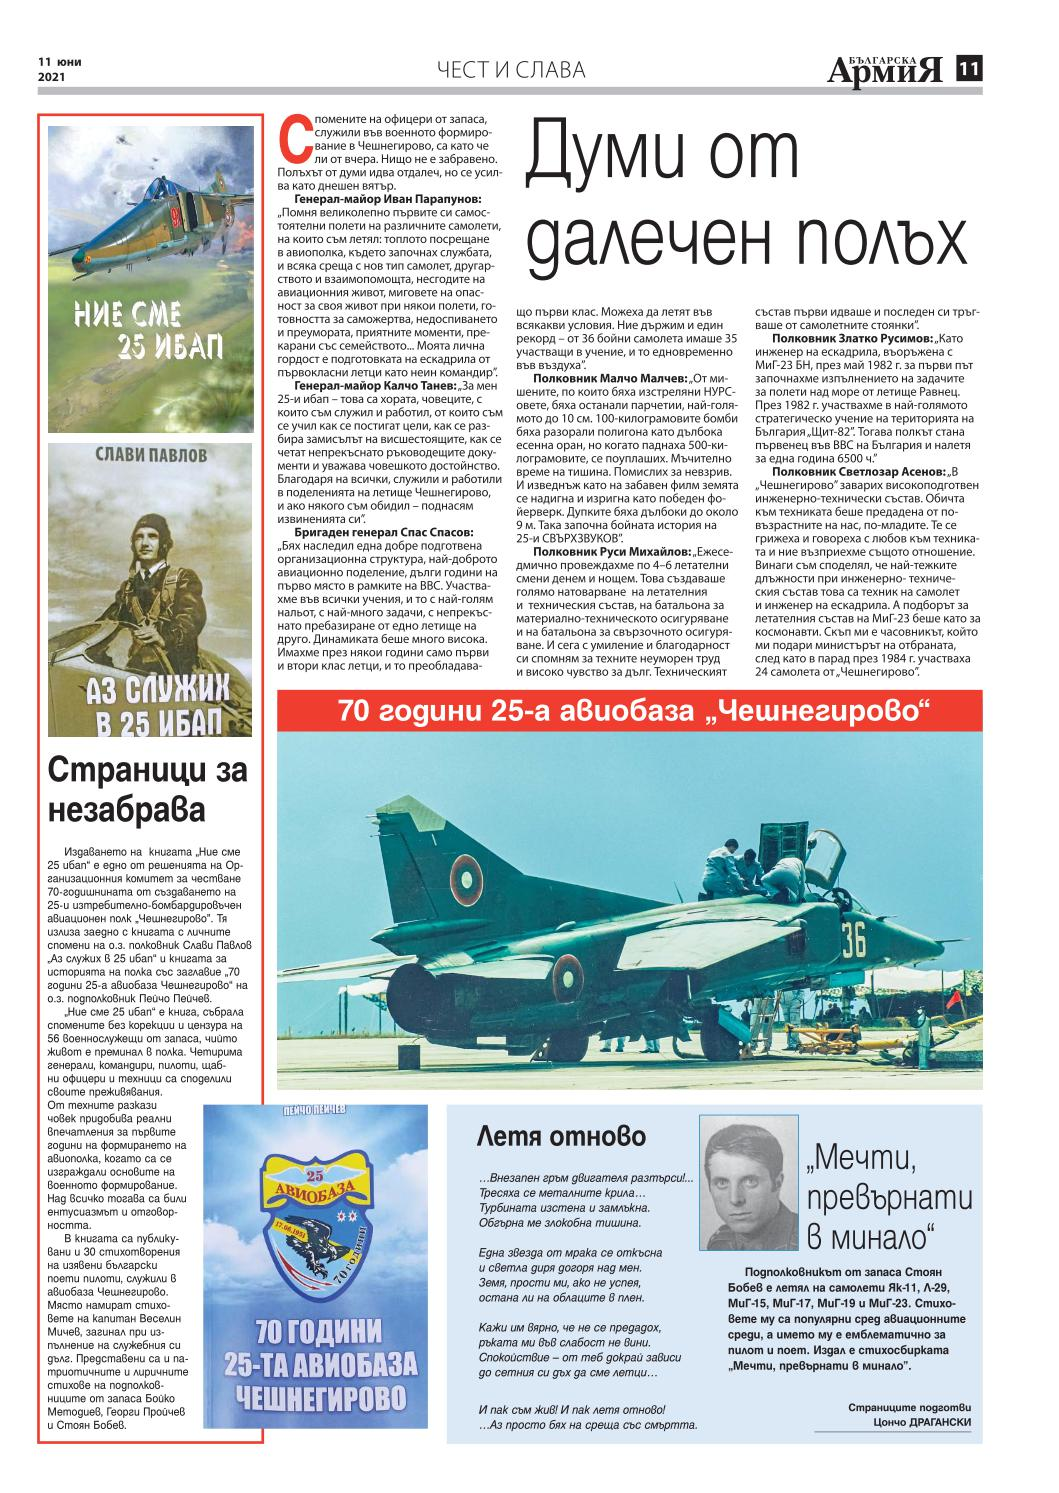 https://armymedia.bg/wp-content/uploads/2021/06/11.page1_-1.jpg